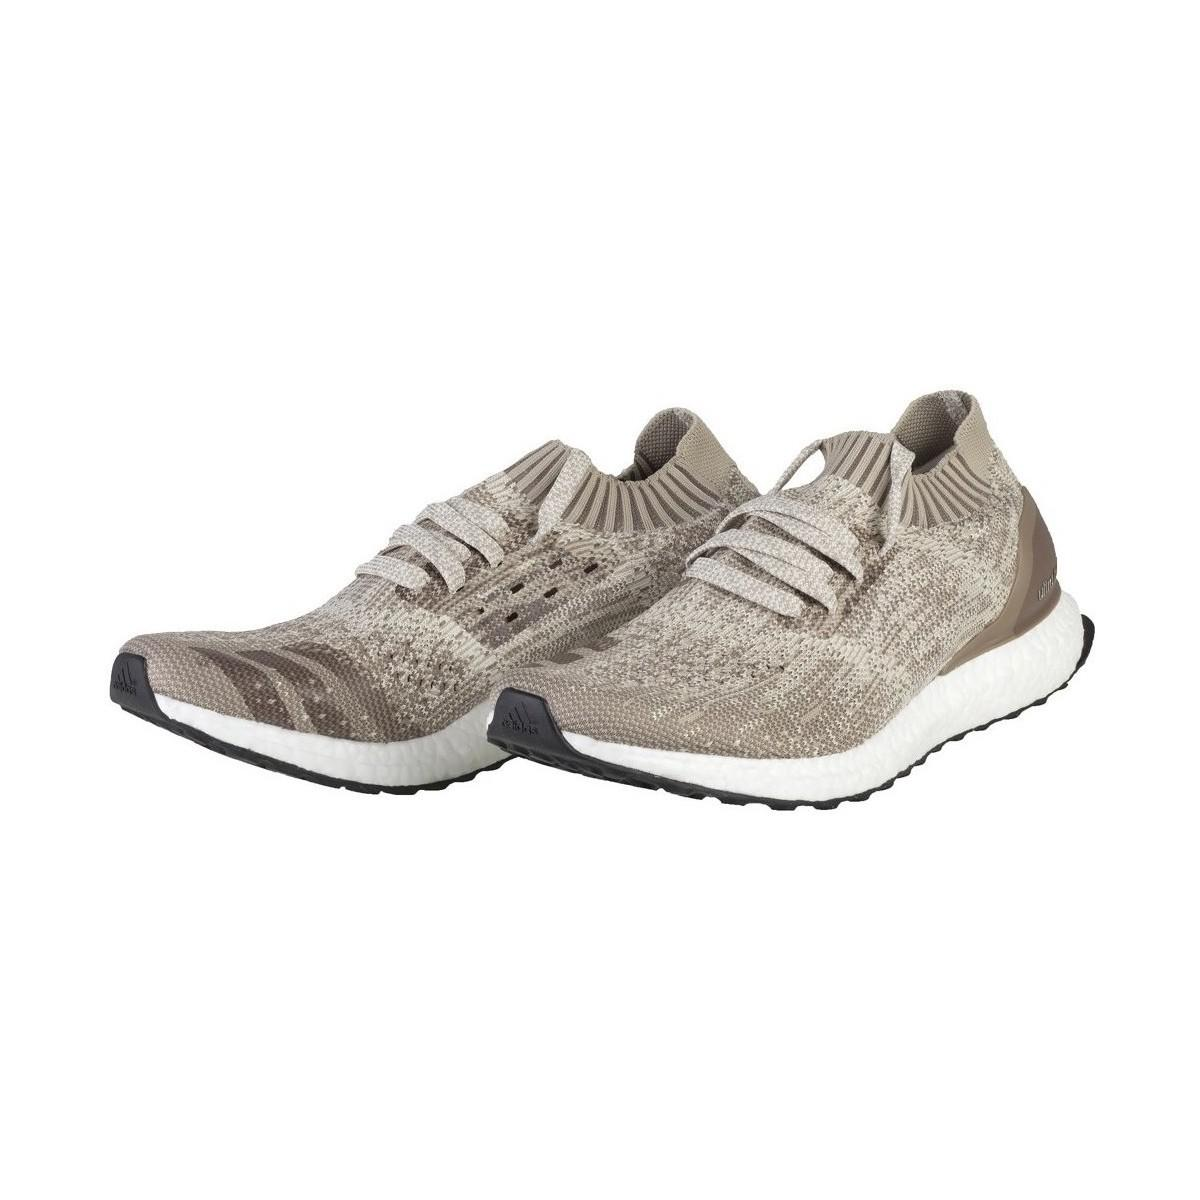 e403e7d0 adidas Ultraboost Uncaged Men's Shoes (trainers) In Beige in Natural ...